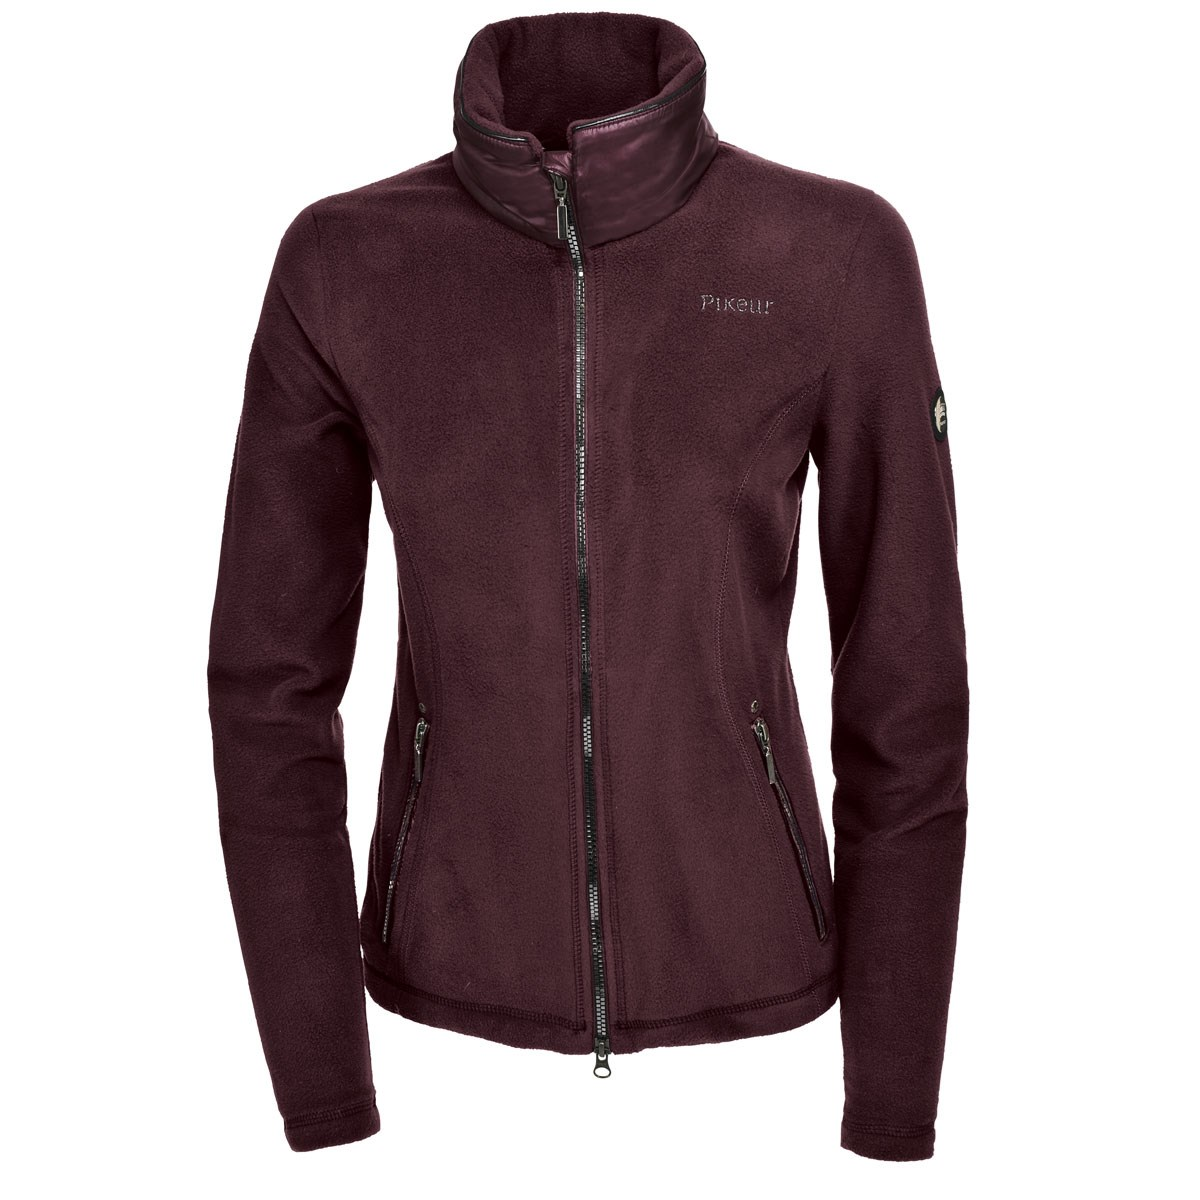 56ea97d64 Pikeur Rajana Premium Ladies Fleece Jumper - Blackberry